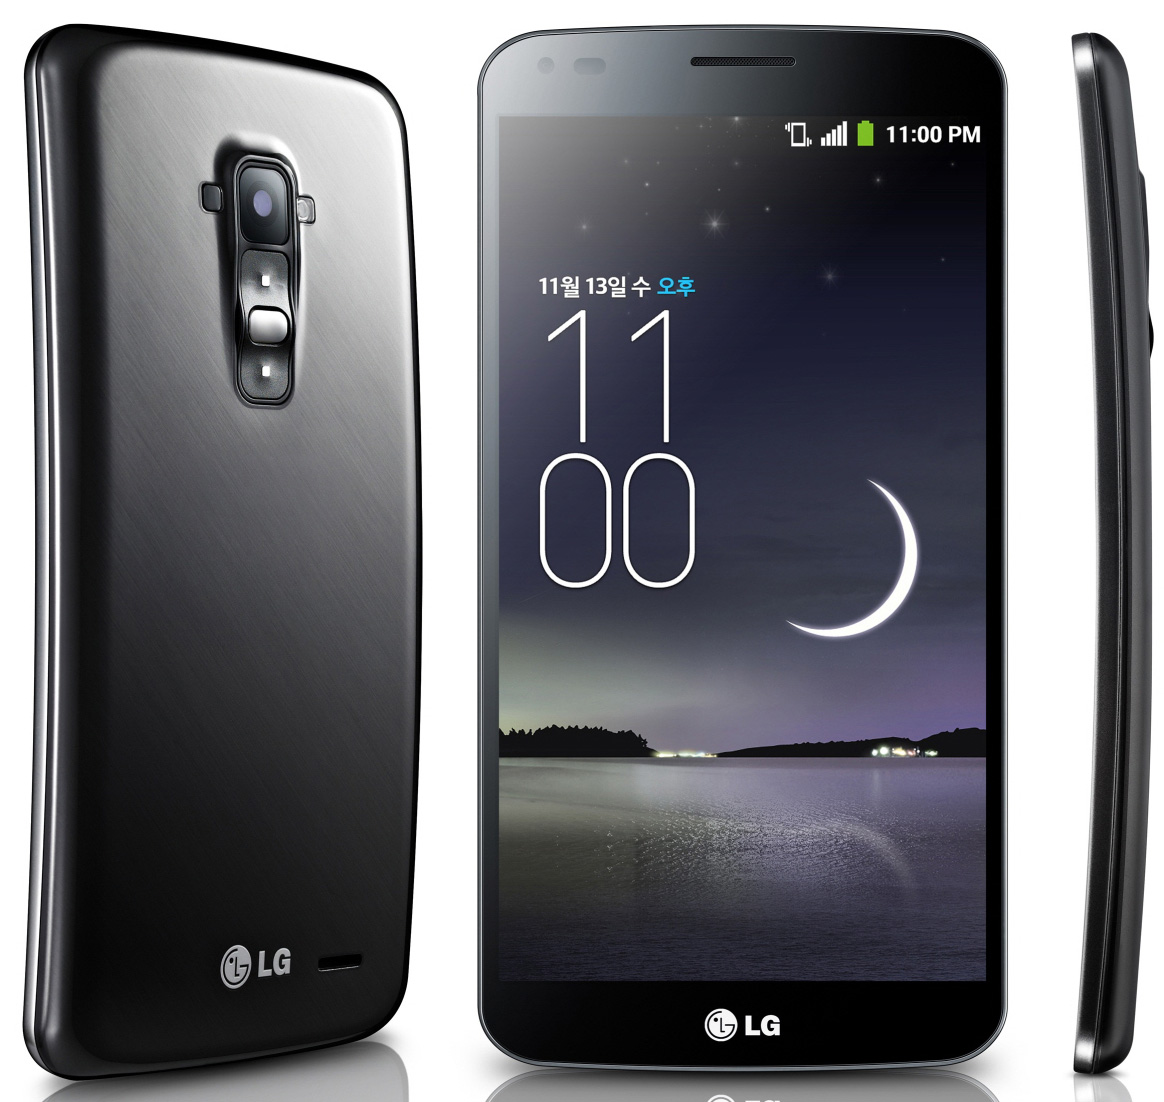 Lg G2 Bluetooth Wifi 4g Lte Android Smart Phone Unlocked